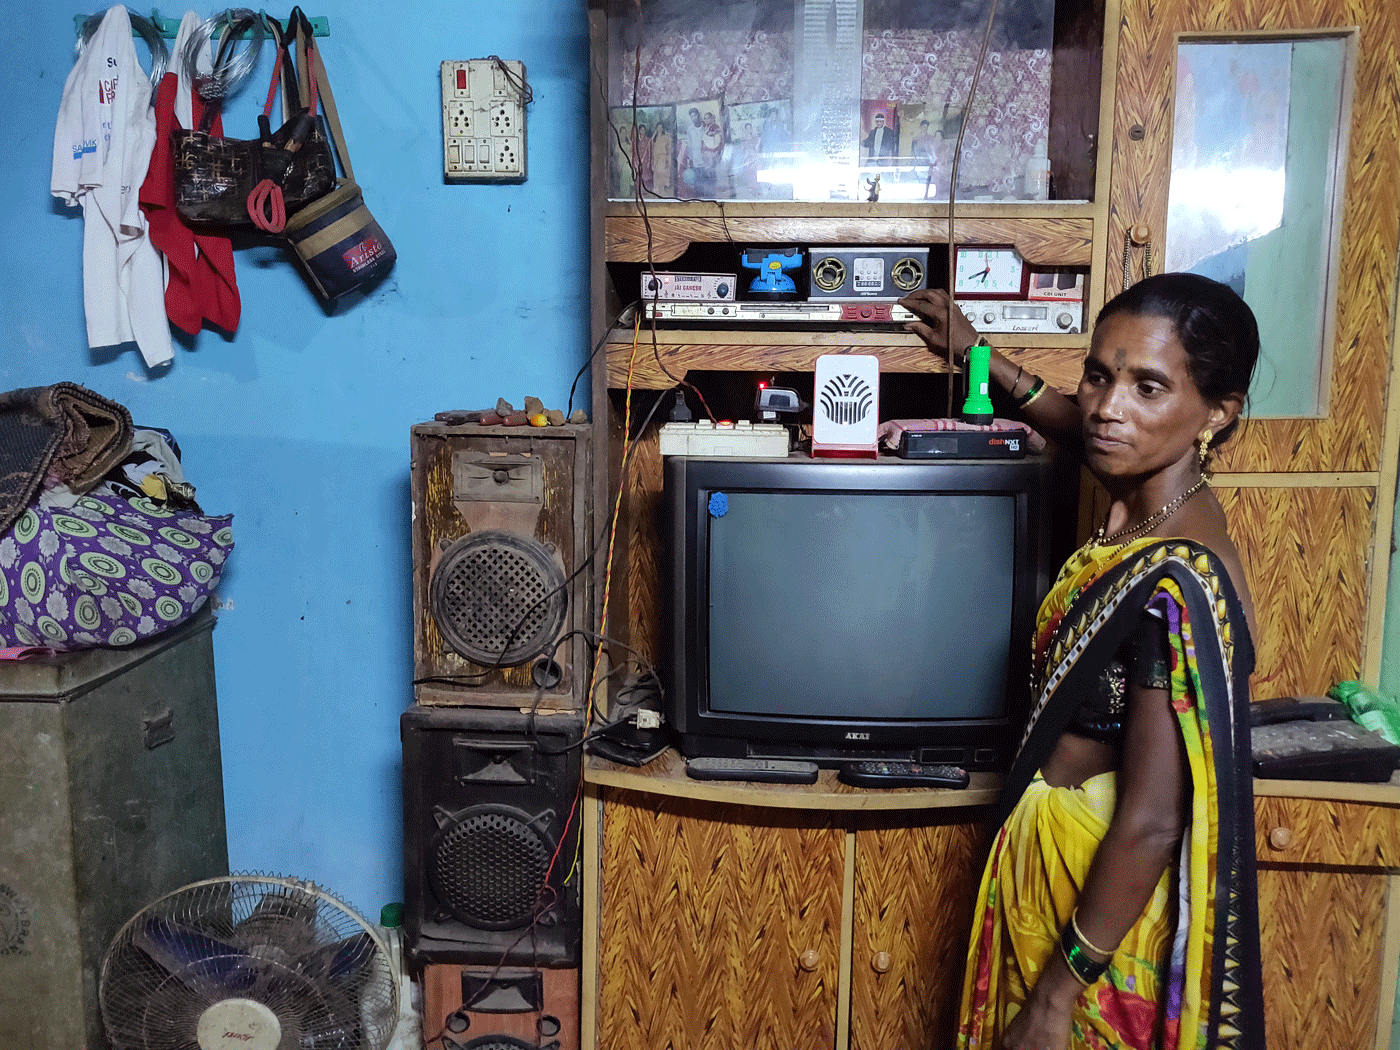 Woman in front of television